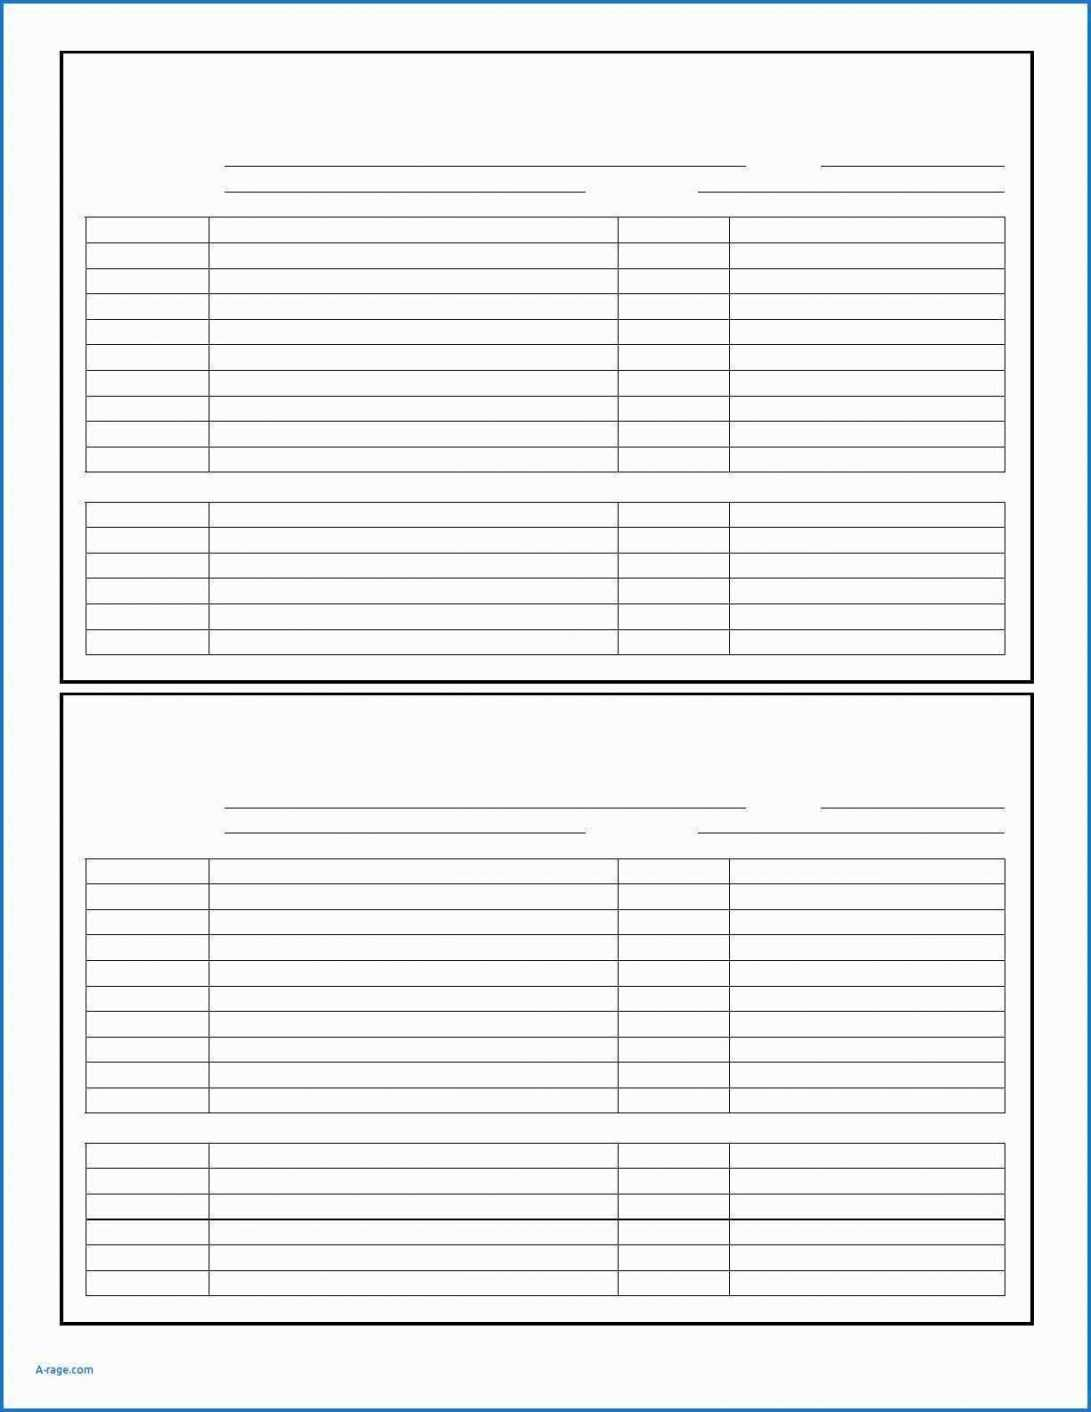 Batting Order Template Pdf Excel Lineup Baseball Card within Softball Certificate Templates Free